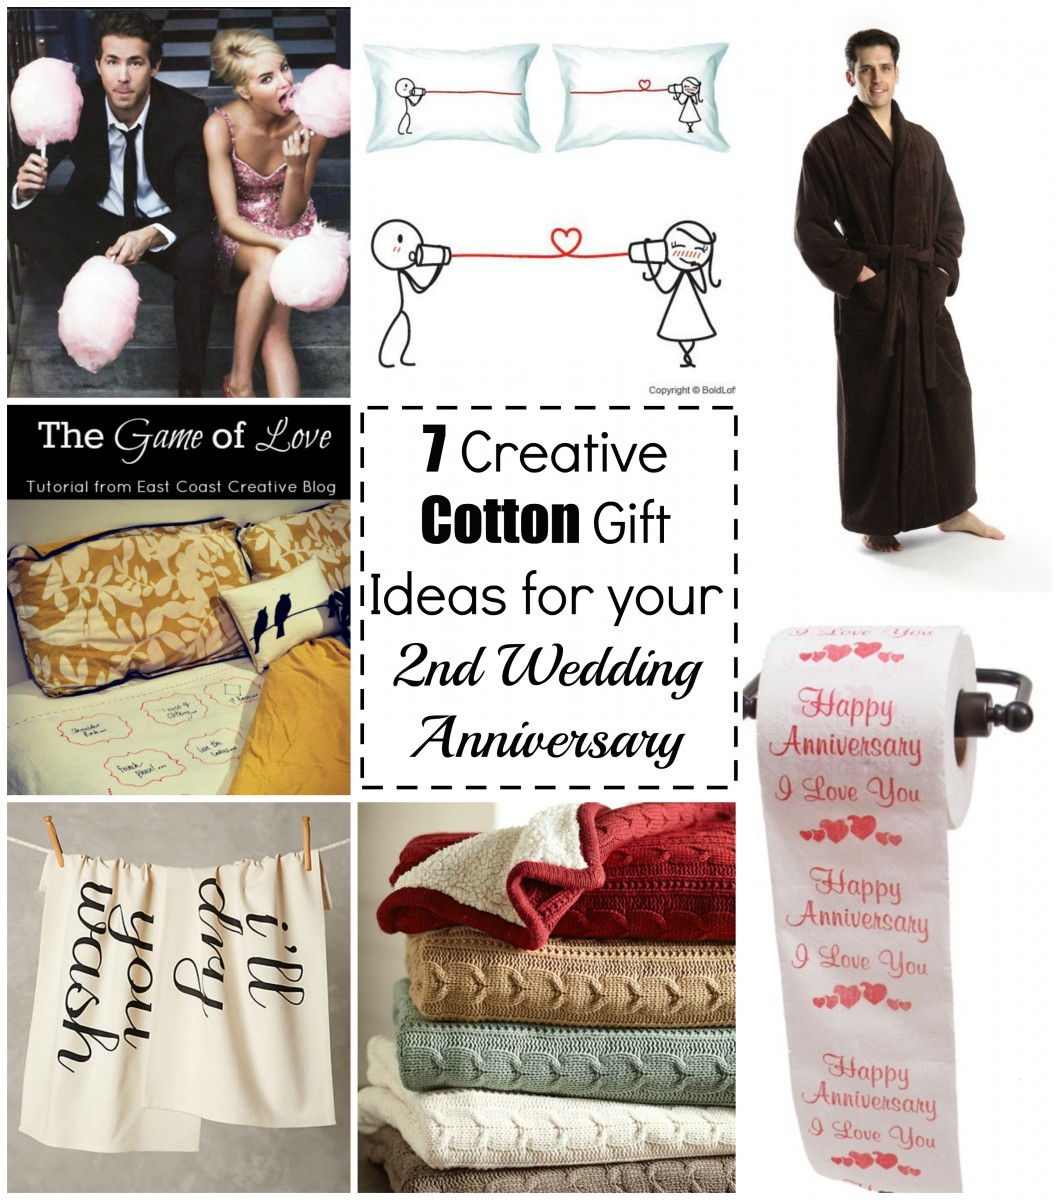 2nd Wedding Anniversary Gift For Him : creative cotton gift ideas for your 2nd wedding anniversary her ...